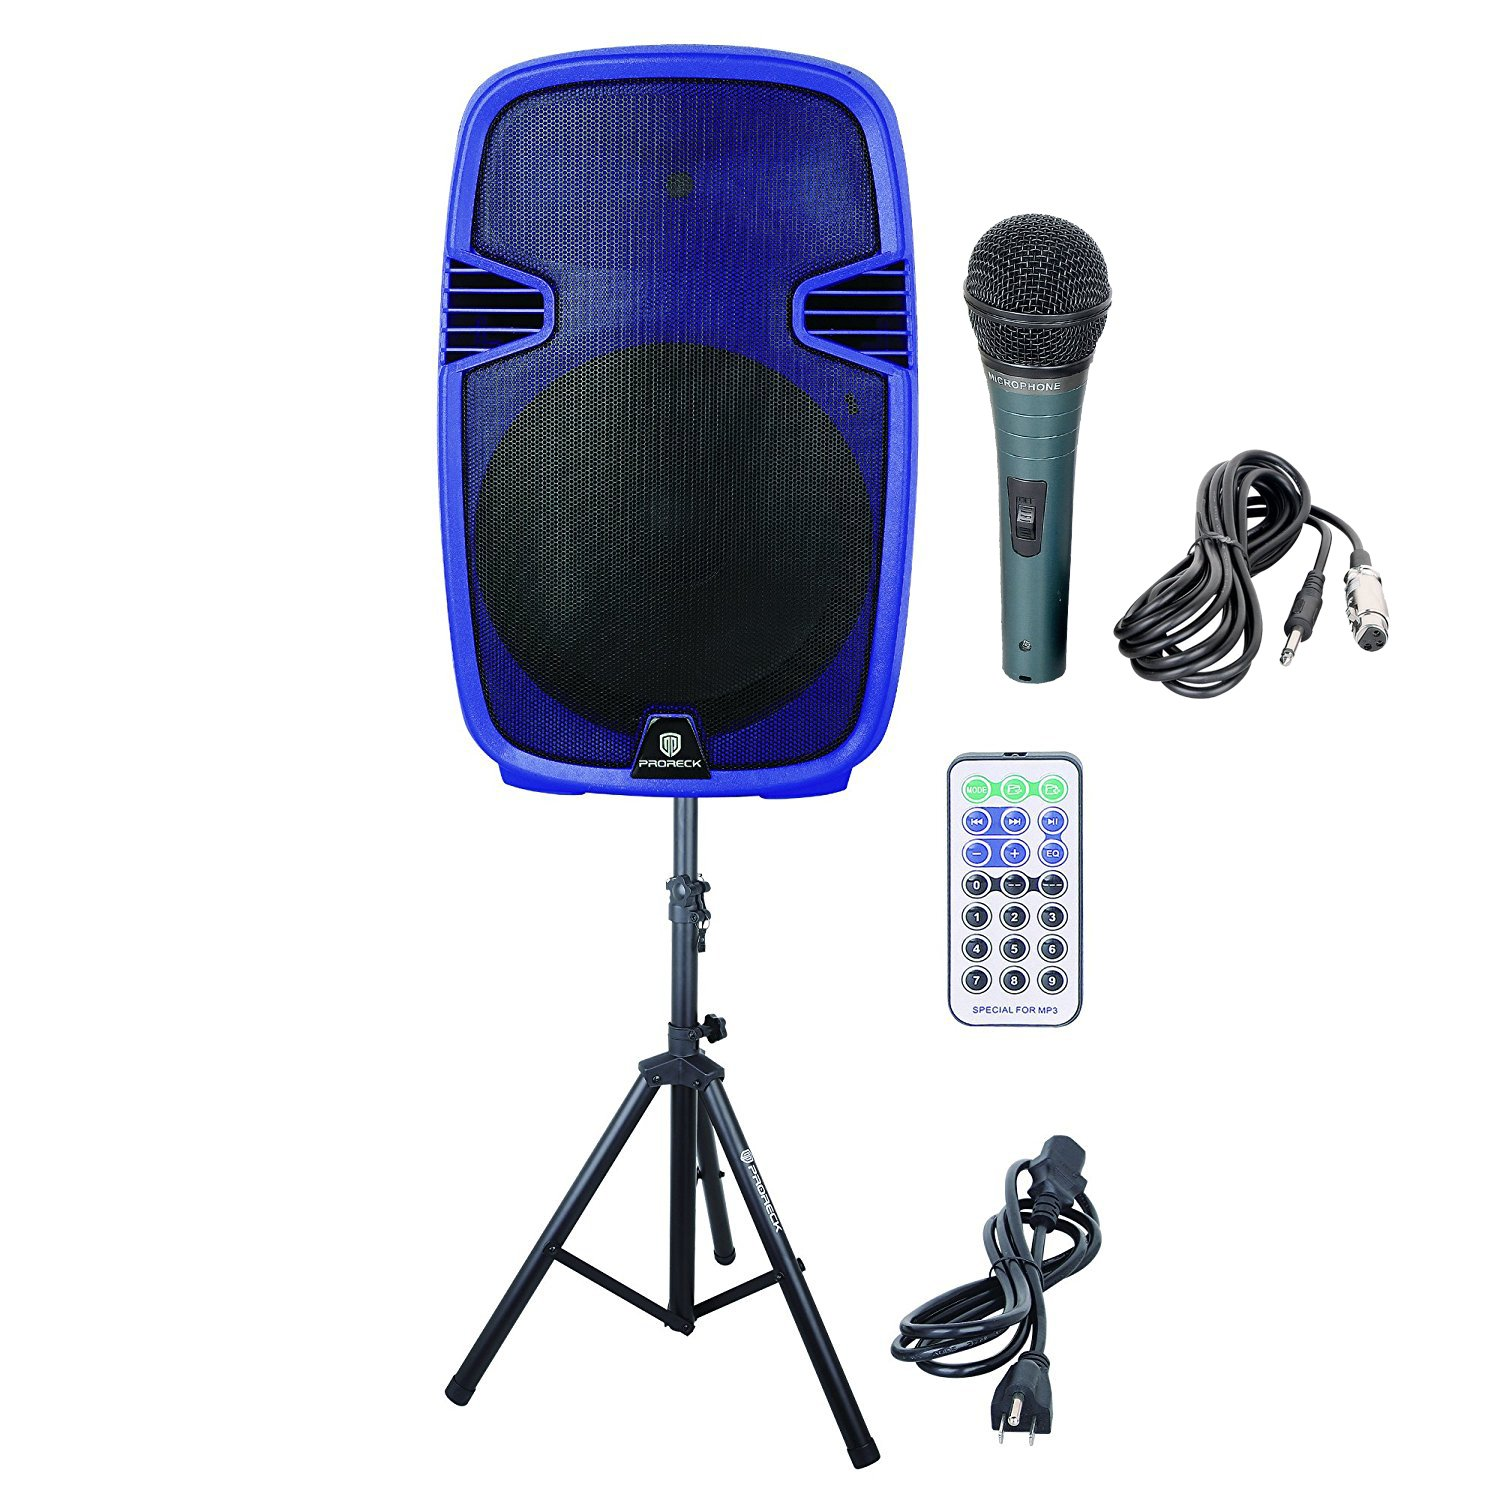 PRORECK PR-C15 Portable 15-inch 600 Watt 2-way Dj/PA Powered Speaker with Bluetooth/USB/SD Card Reader/ FM Radio/Remote Control/LED Light/Speaker Stand, Blue PRORECK AUDIO PR-C15-BLUE